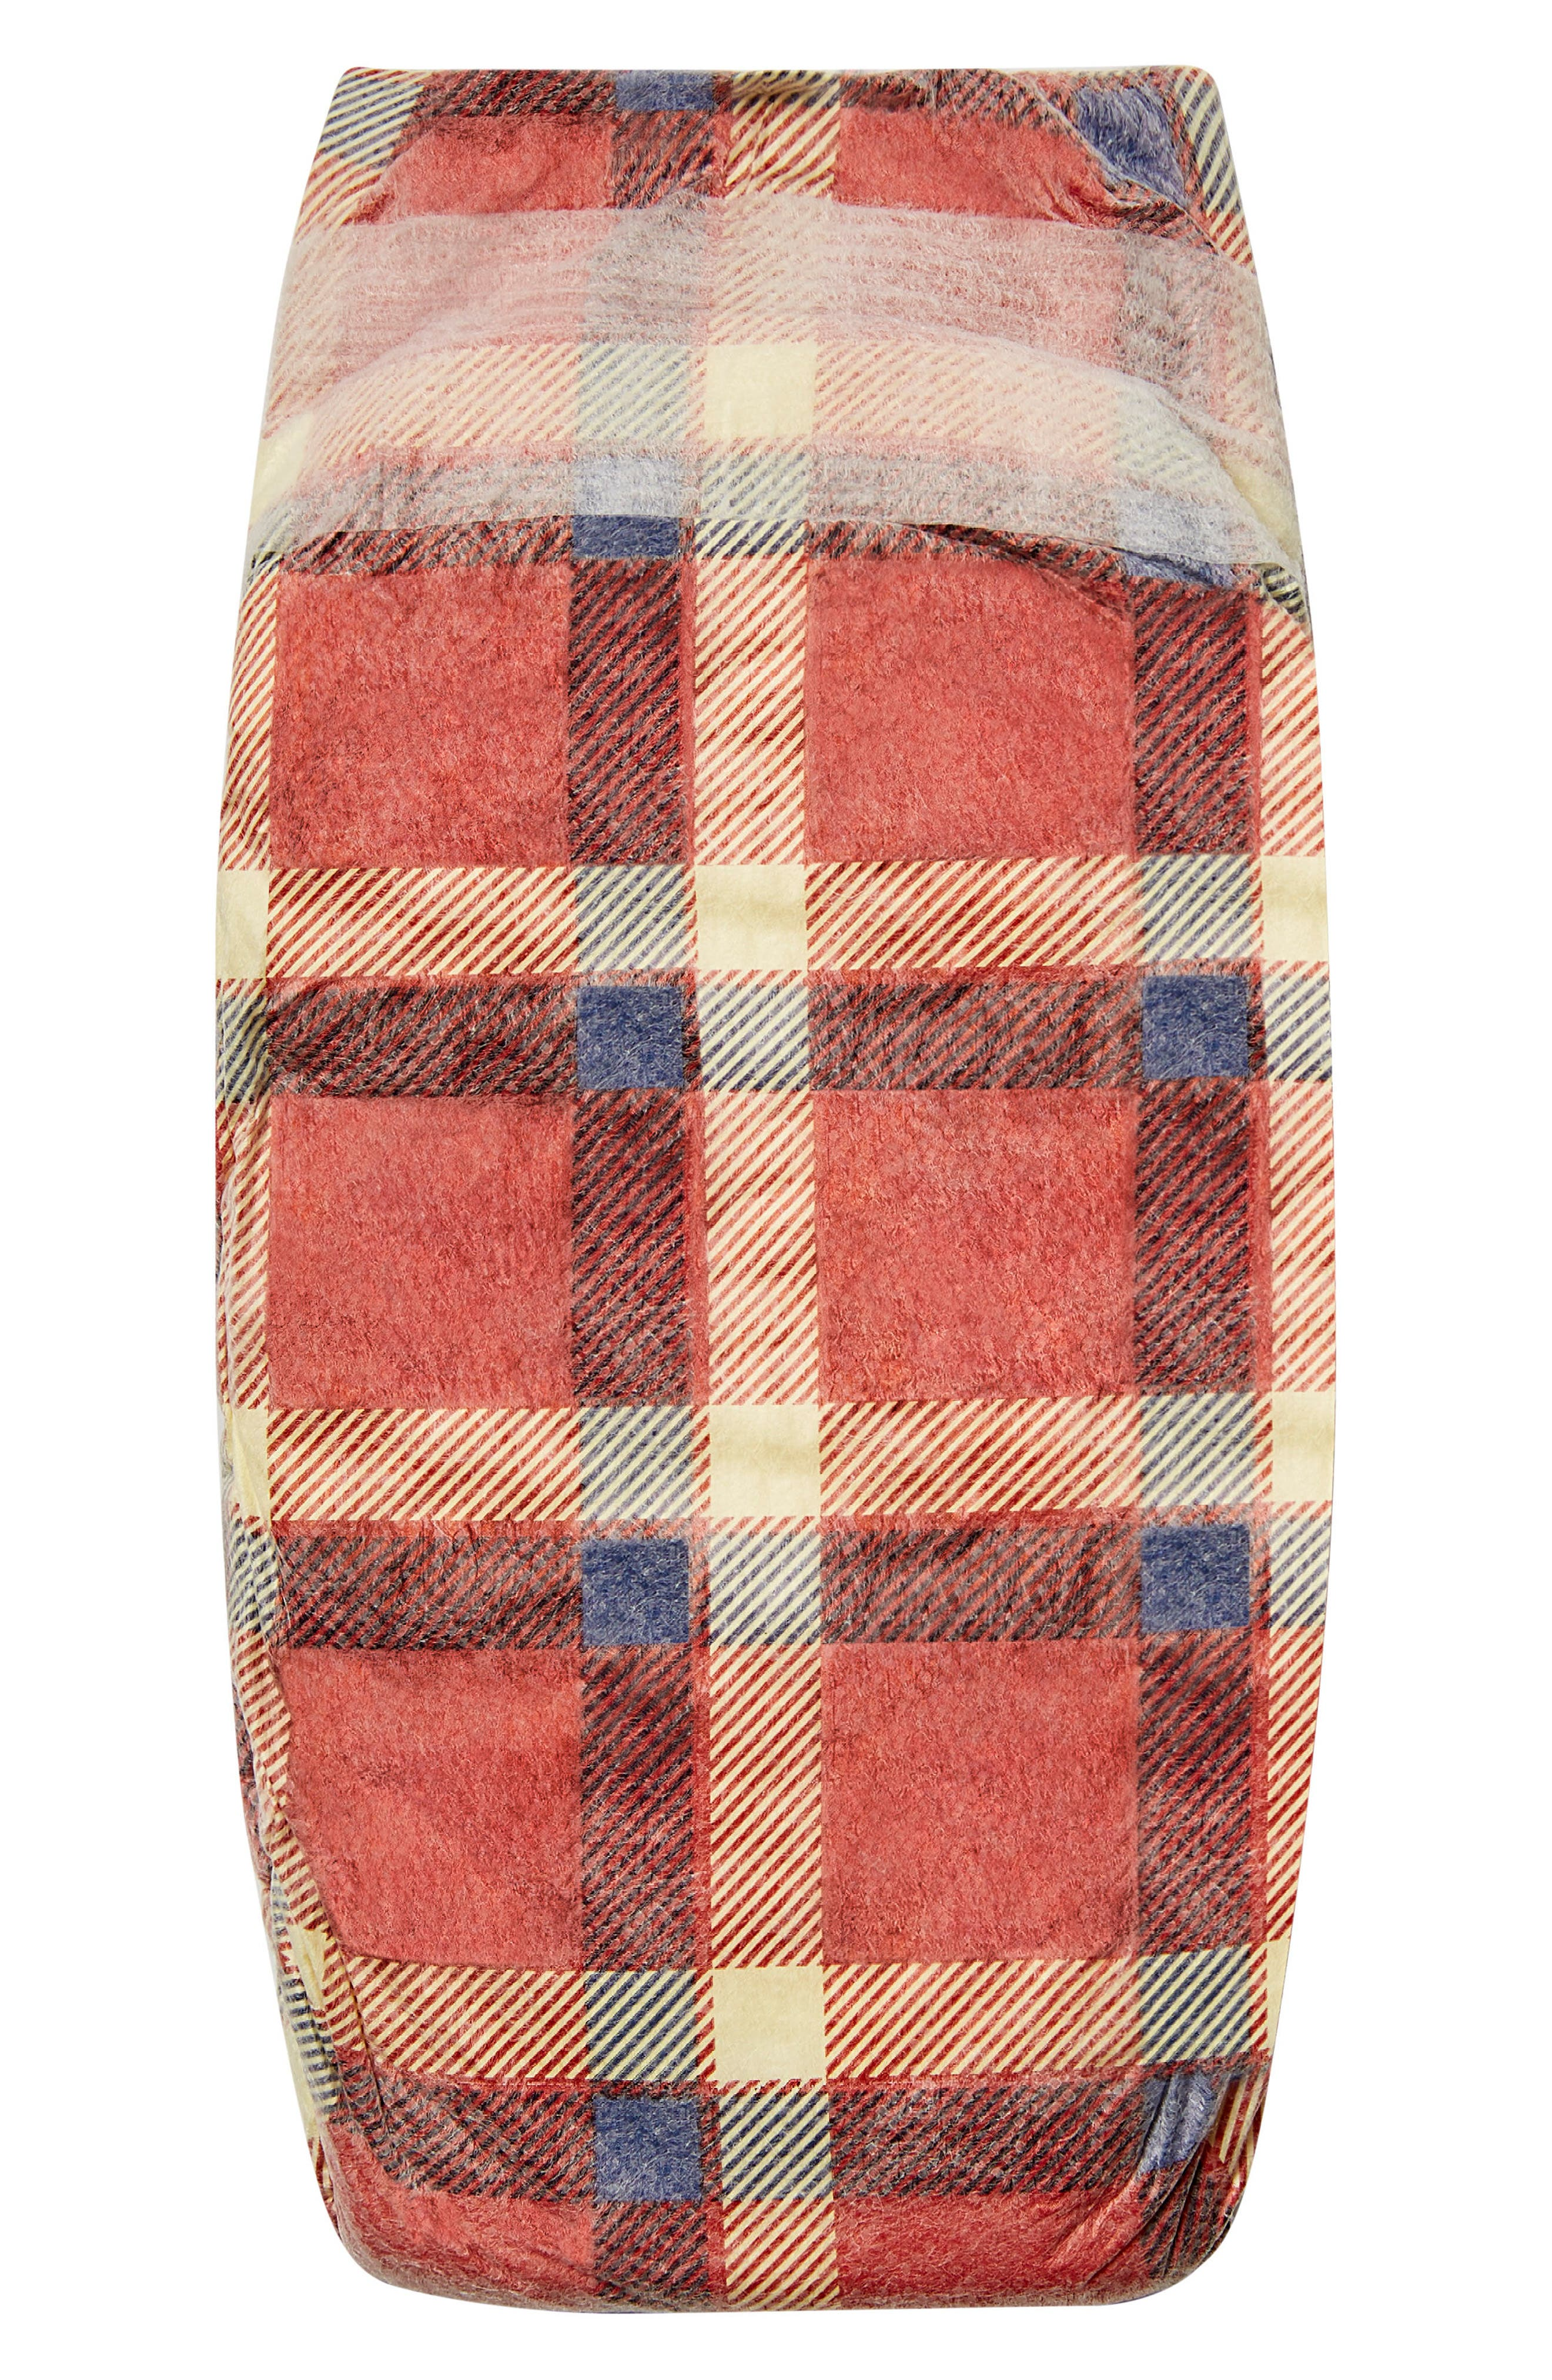 Alternate Image 4  - The Honest Company x THE GREAT. The Camper Plaid Diapers